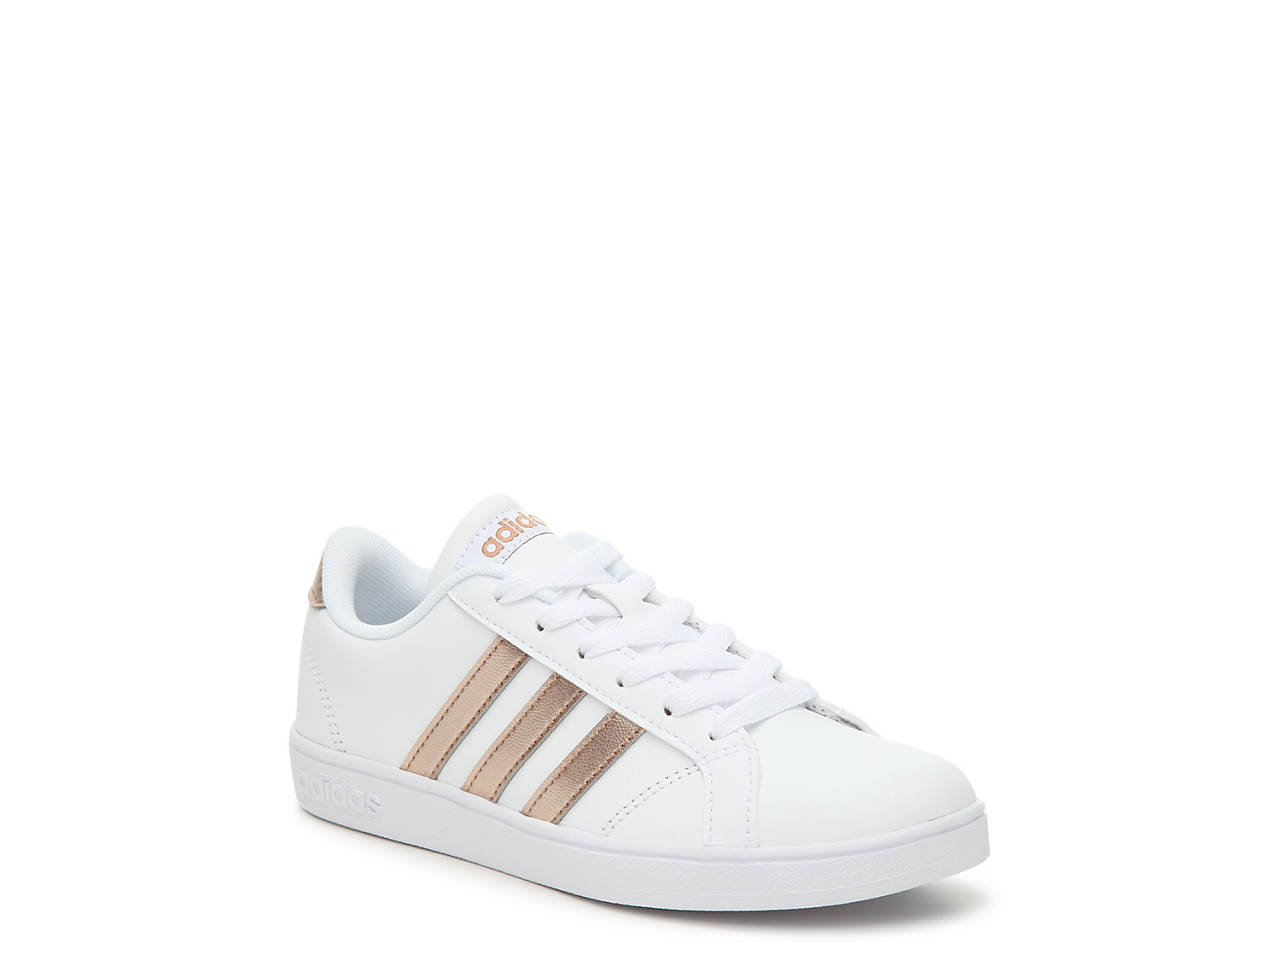 426a71f3bb7d adidas Baseline Youth Sneaker Kids Shoes